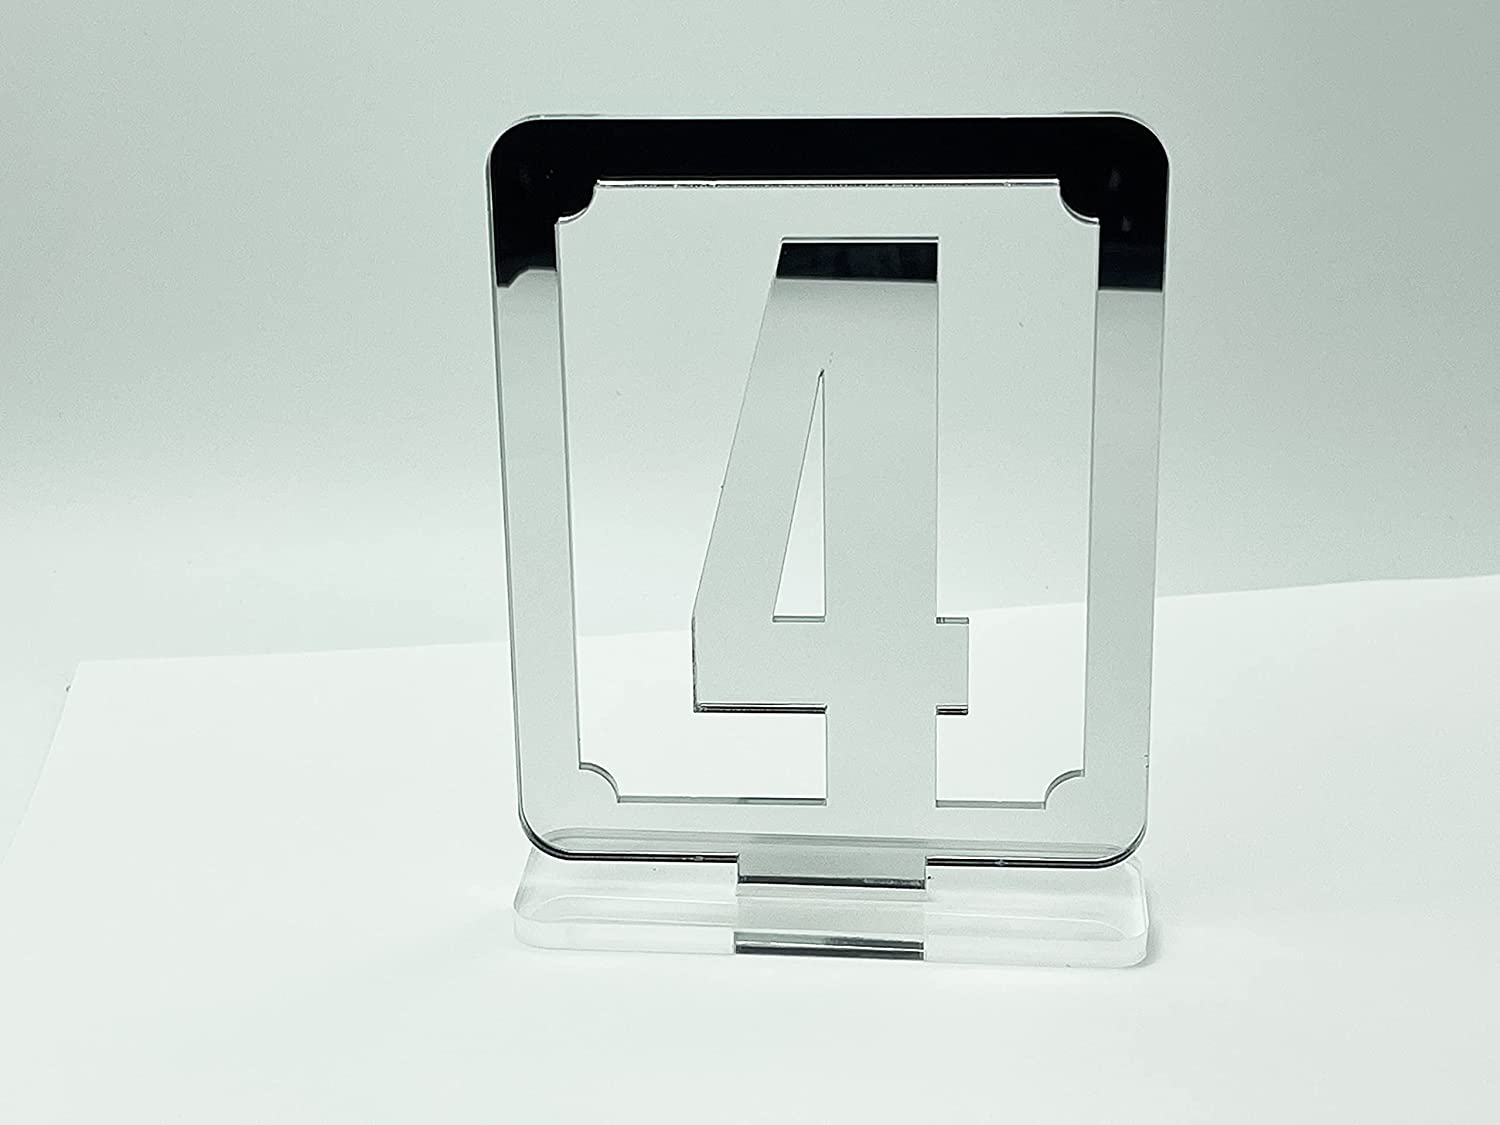 Modern Gallery Silver Table OFFicial shop Numbers 1-20 Acrylic Set Wedding in Ranking TOP2